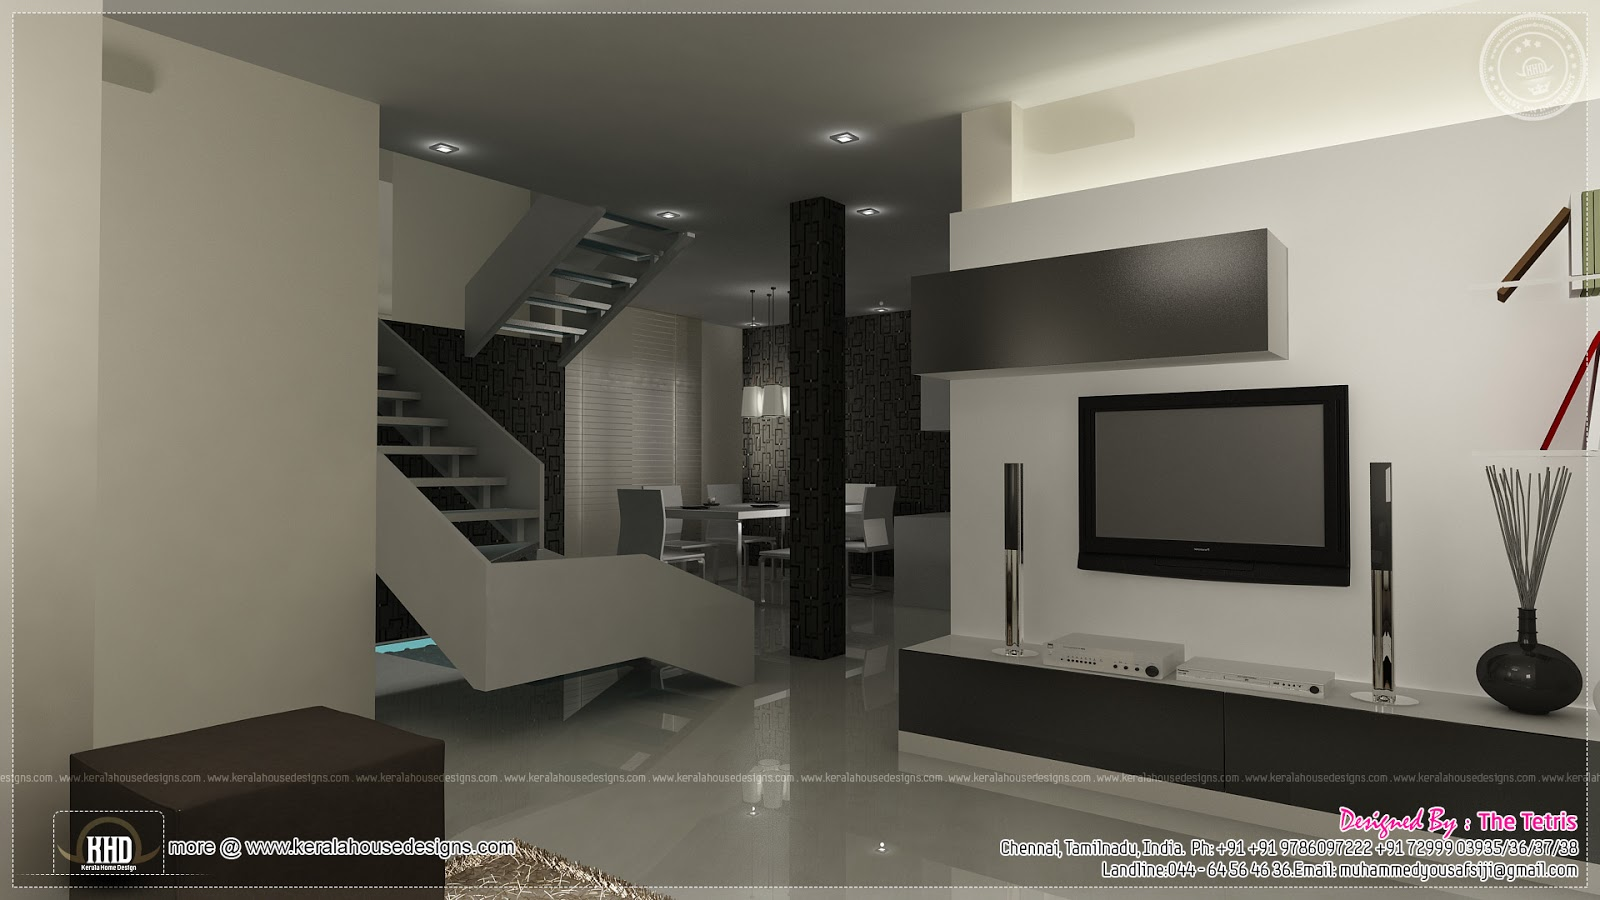 Interior design renderings by tetris architects chennai for House of interior design